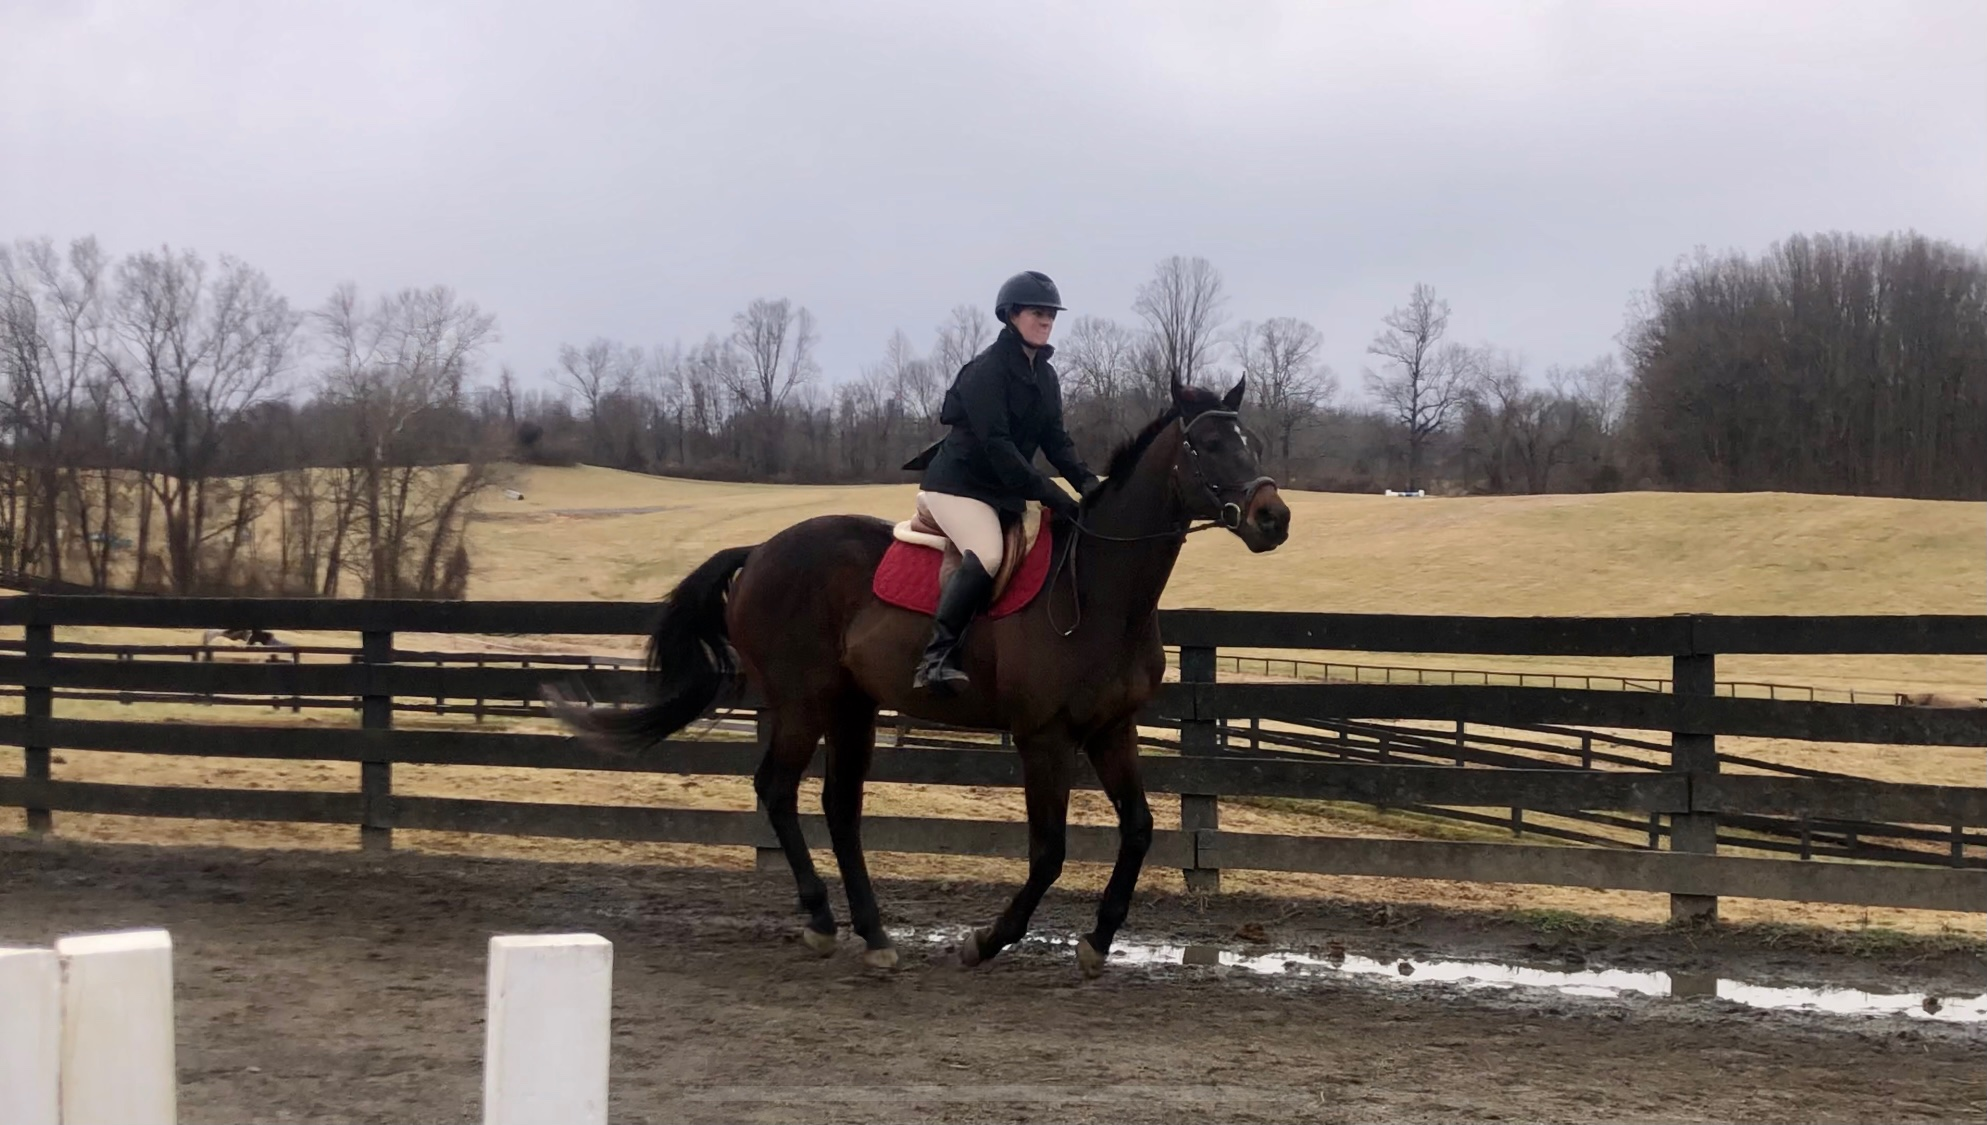 Rider cantering on a horse.